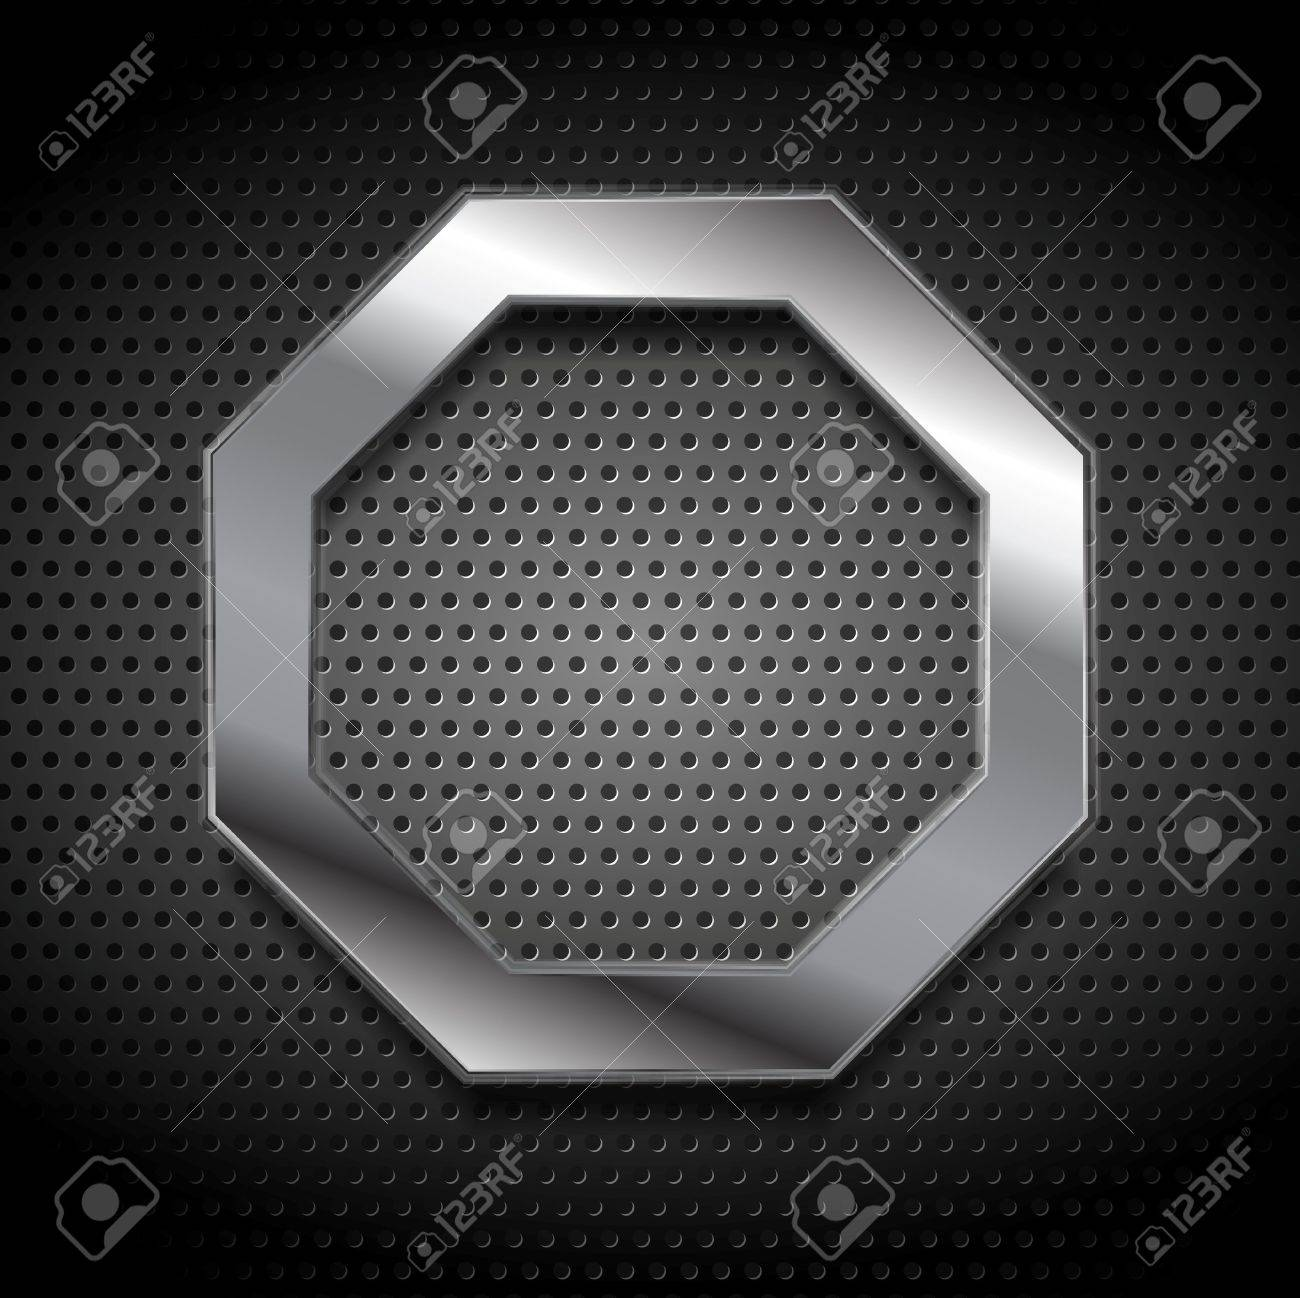 Metal octagon logo on perforated background. Vector design - 49573805